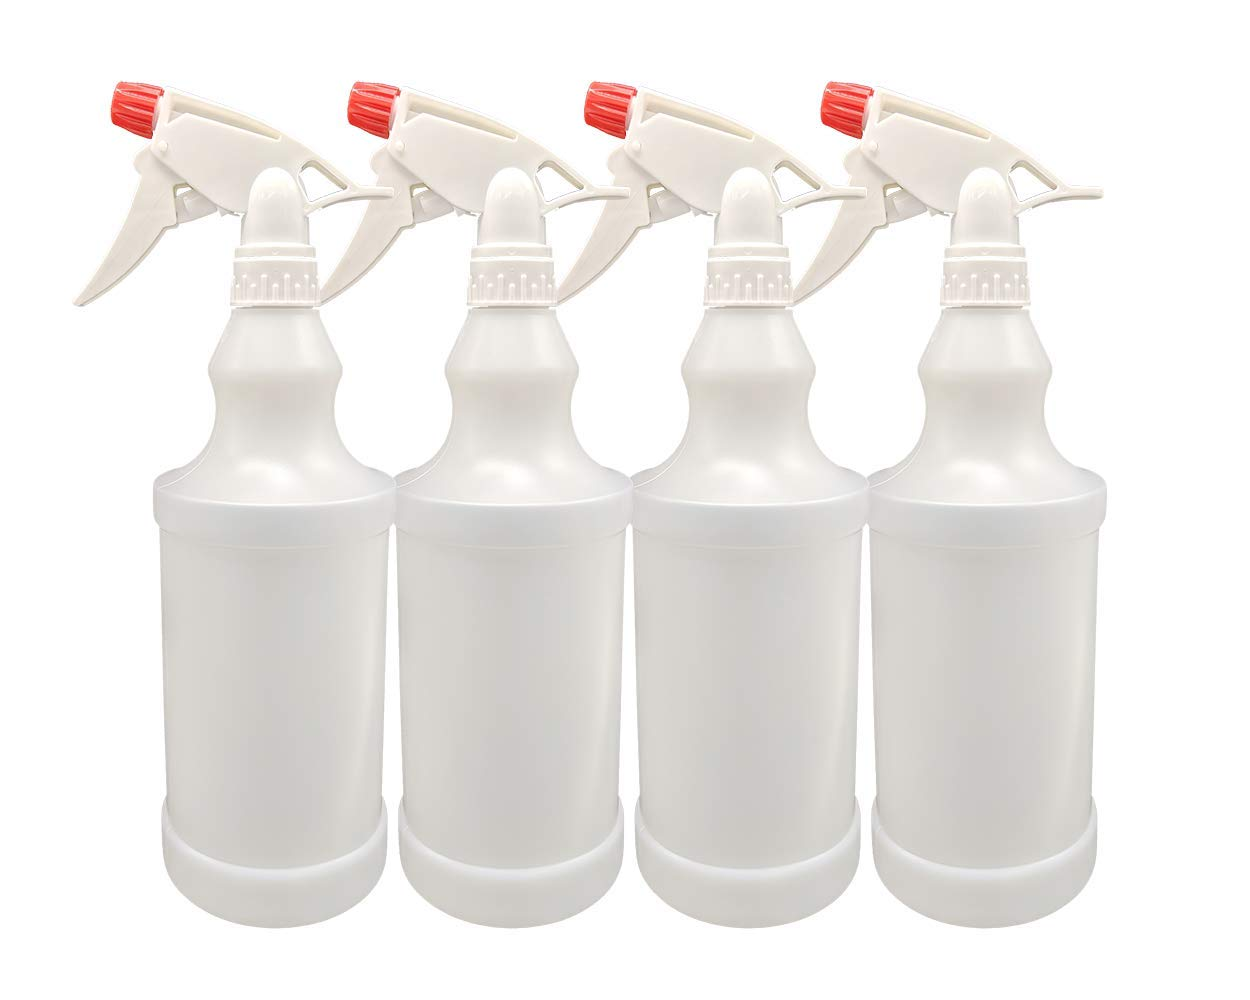 Plastic Spray Bottles Leak Proof Adjustable Nozzle Empty 32 oz - 1 Liter Value Pack of 4 with Commercial Grade Trigger Multi-Purpose Use for Cleaning Solutions, Planting, Cooking by AG